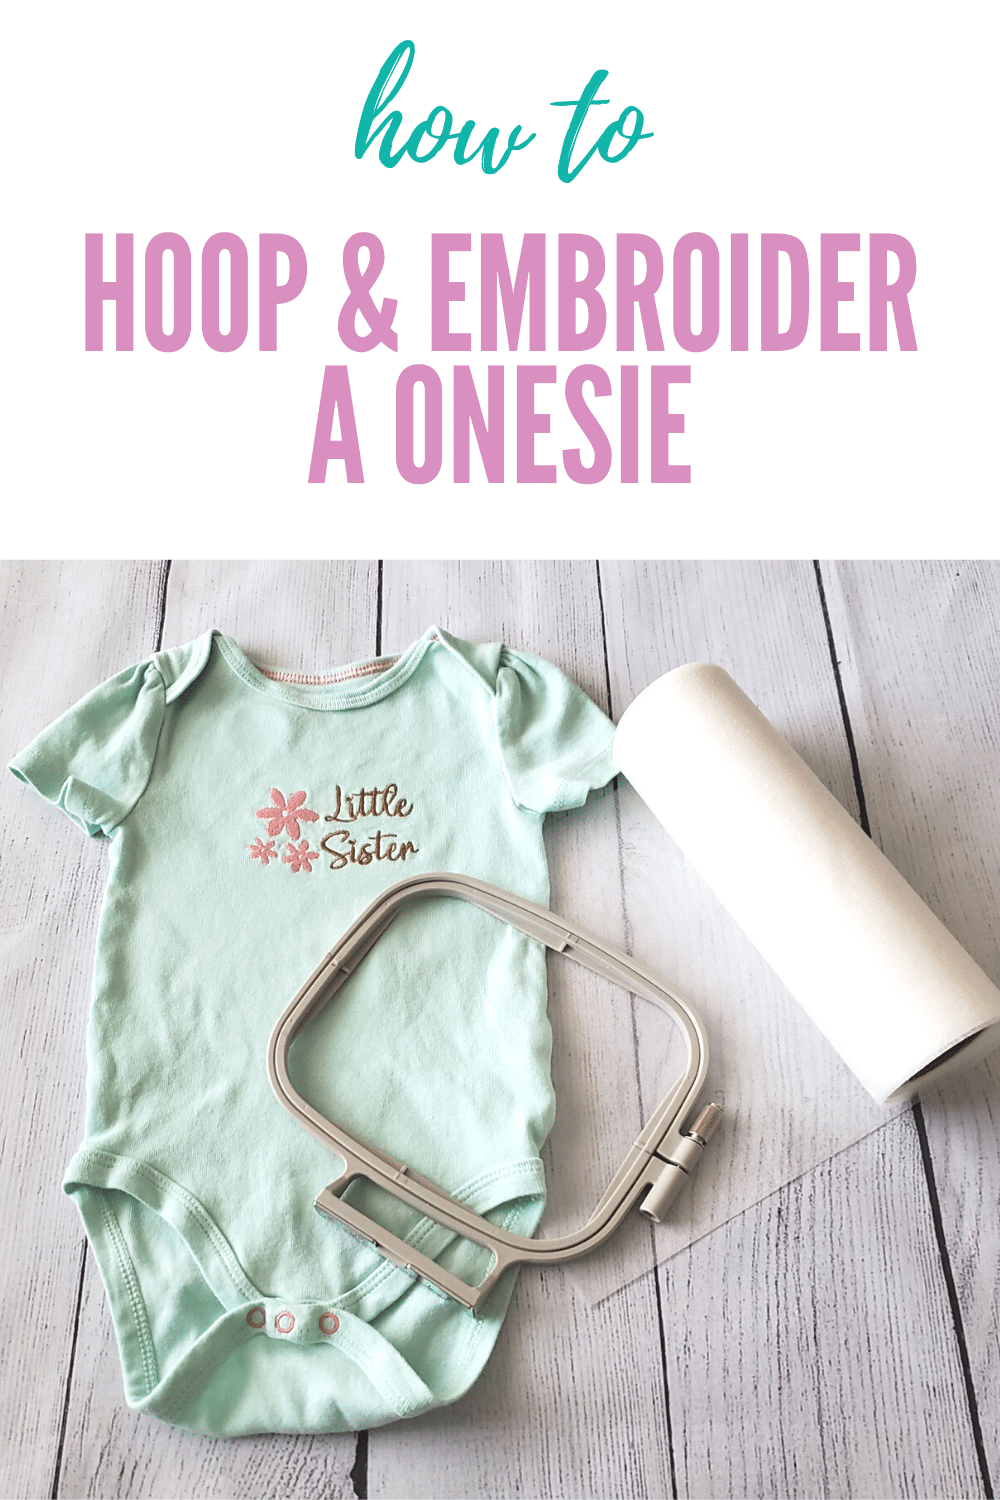 how to embroider a onesie - Copy